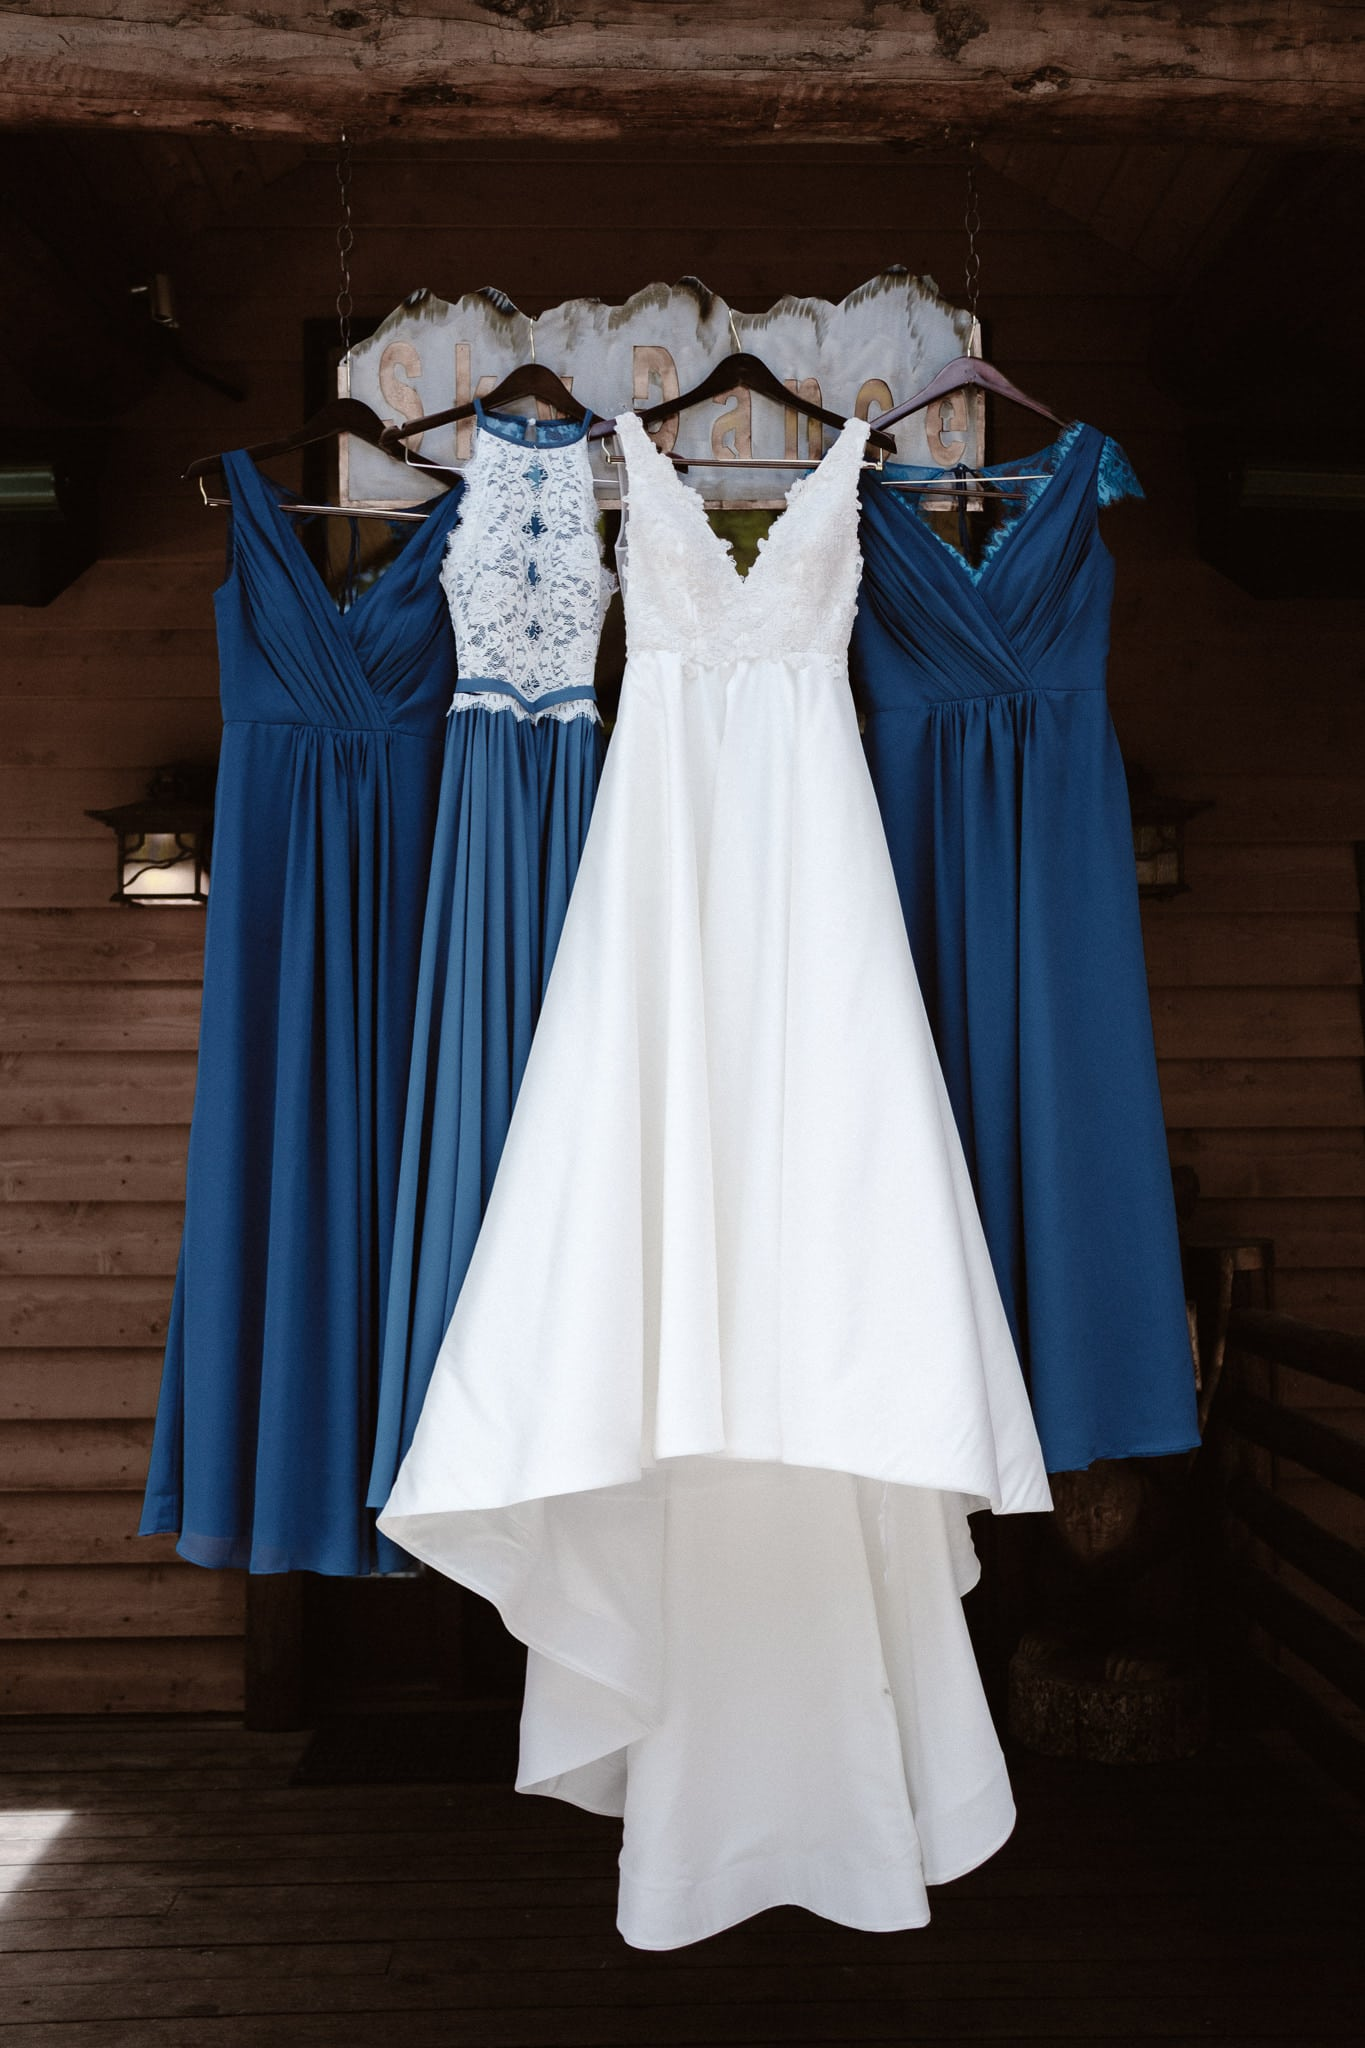 Wedding dress and dark blue bridesmaid dresses hanging at log cabin, Breckenridge wedding photographer